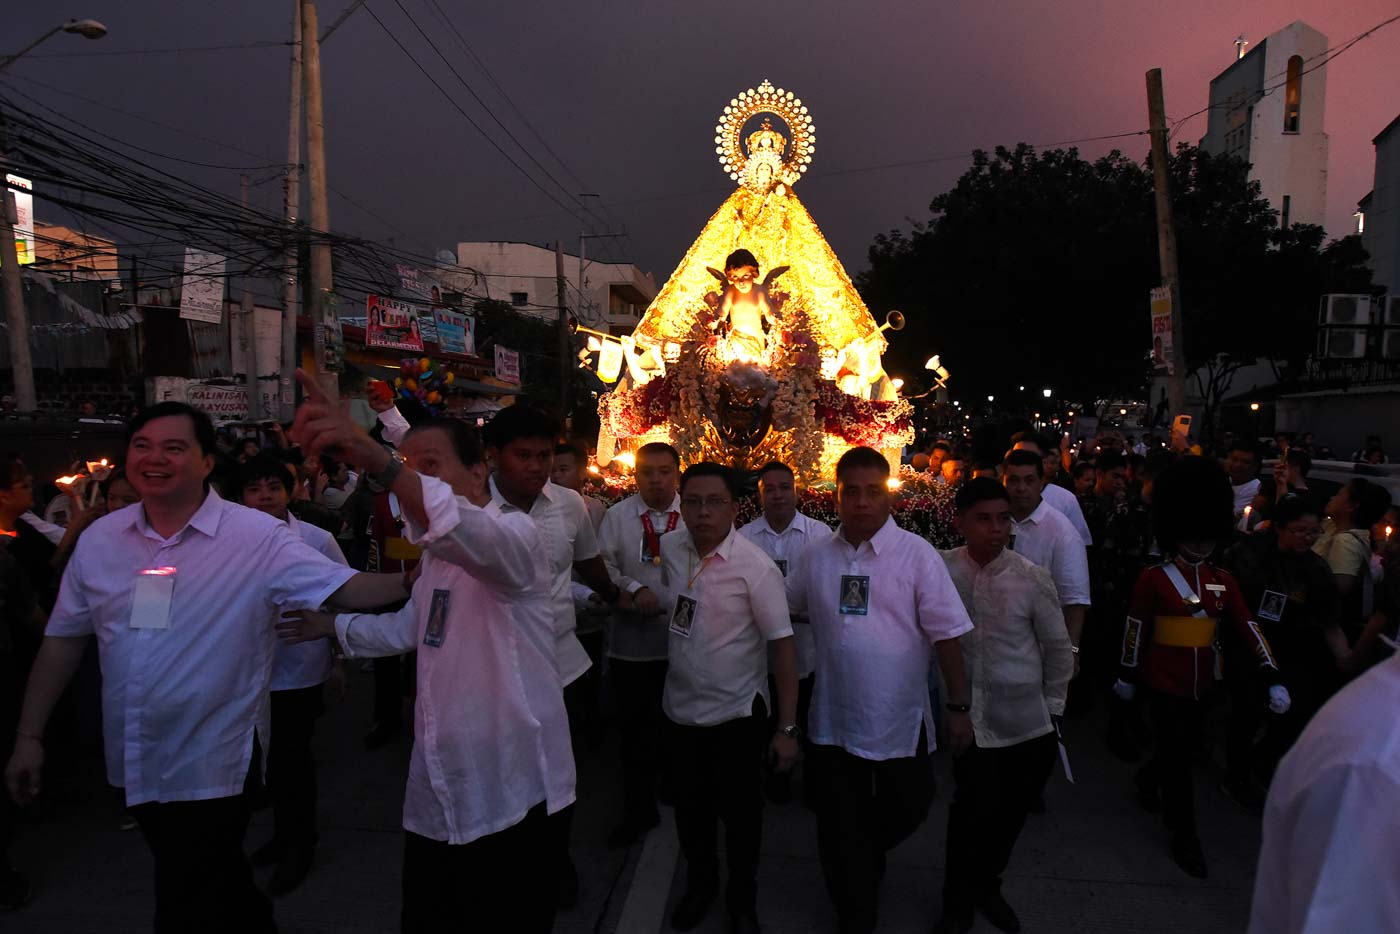 ANNUAL FEAST. The feast of Our Lady of the Most Holy Rosary, La Naval de Manila, is held every second Sunday of October. Photo by Maria Tan/Rappler